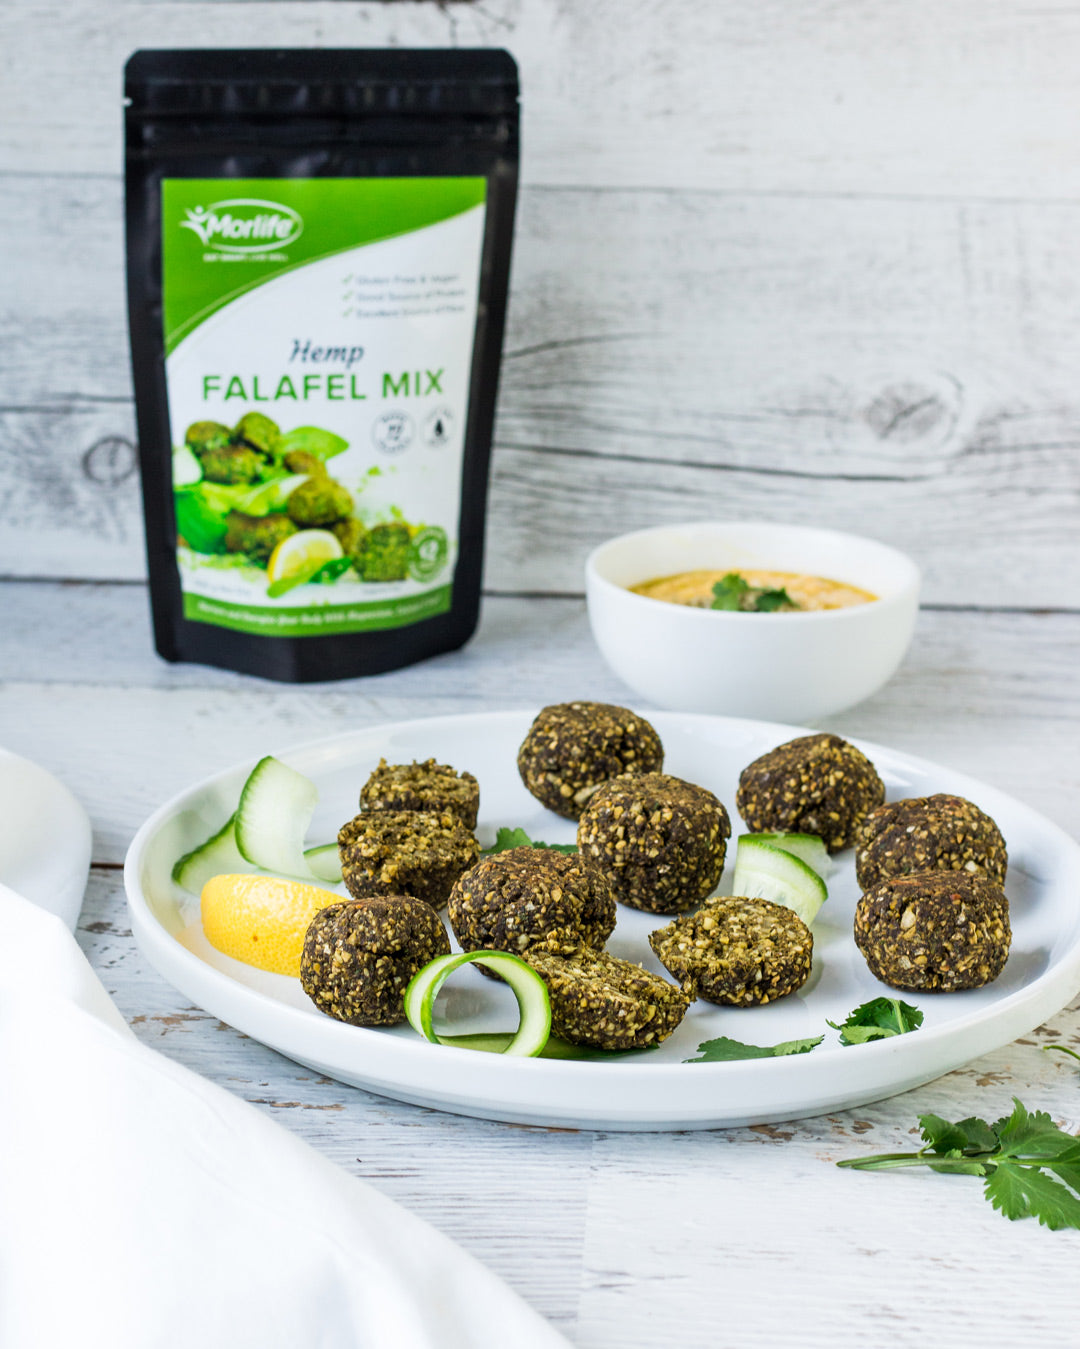 hemp falafels with dip recipe